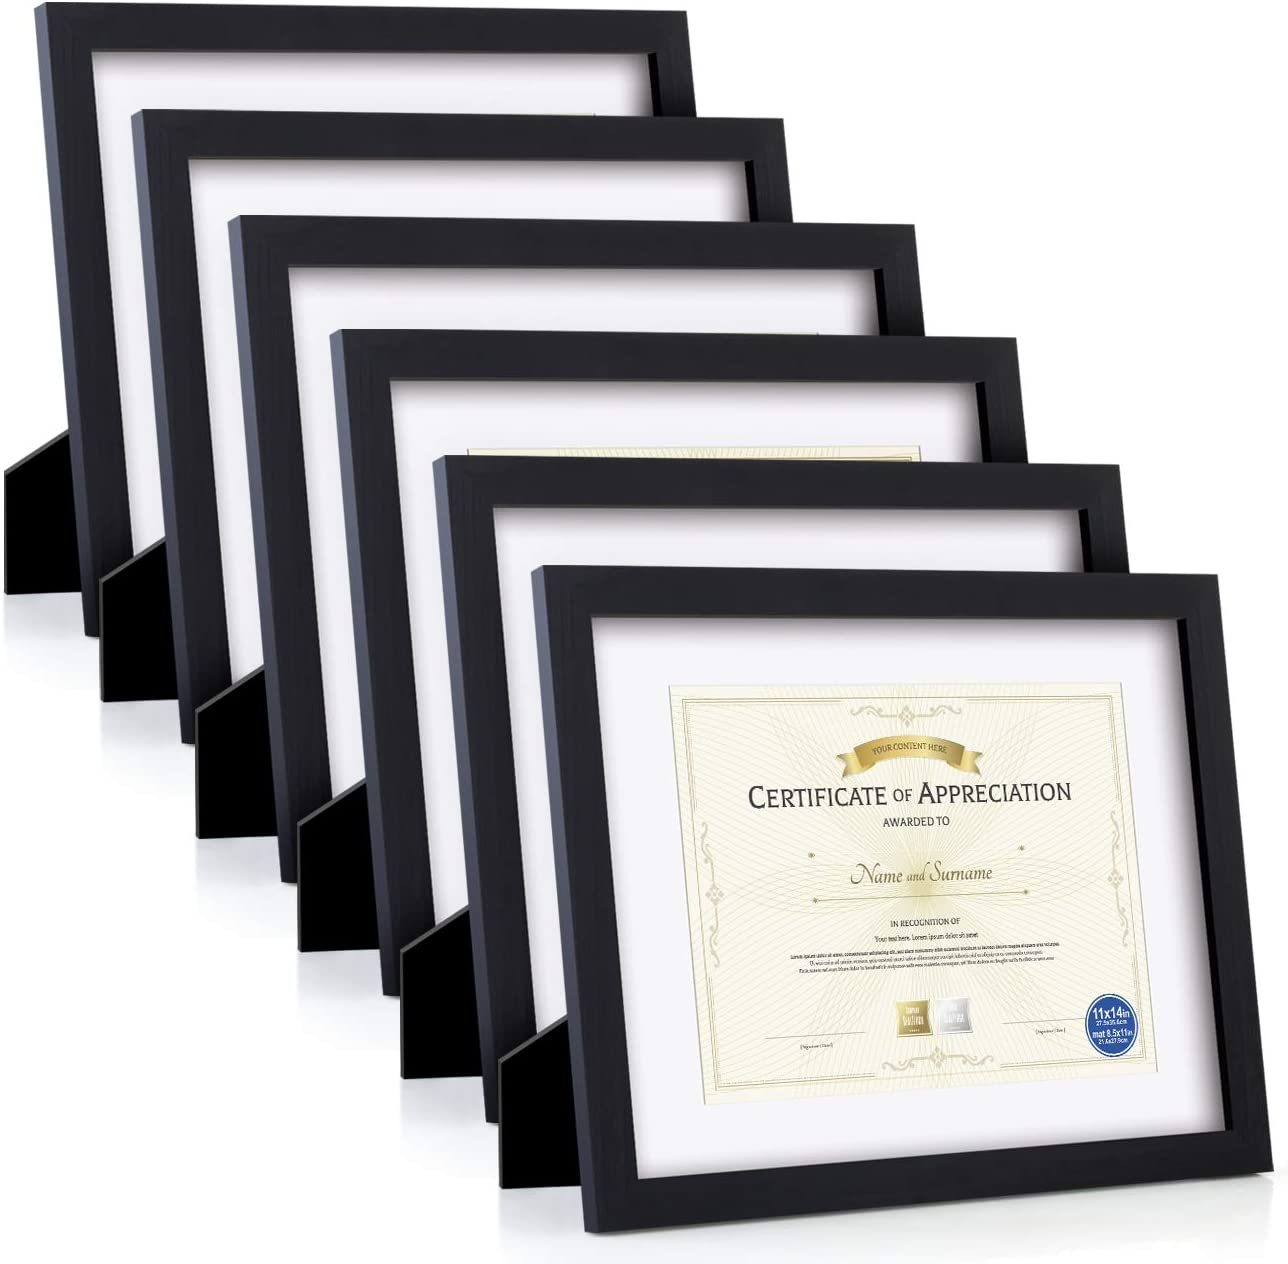 Certificate Frames Document Frame 6PK Made Wood Solid of Glas HD 定価の67%OFF 直営ストア